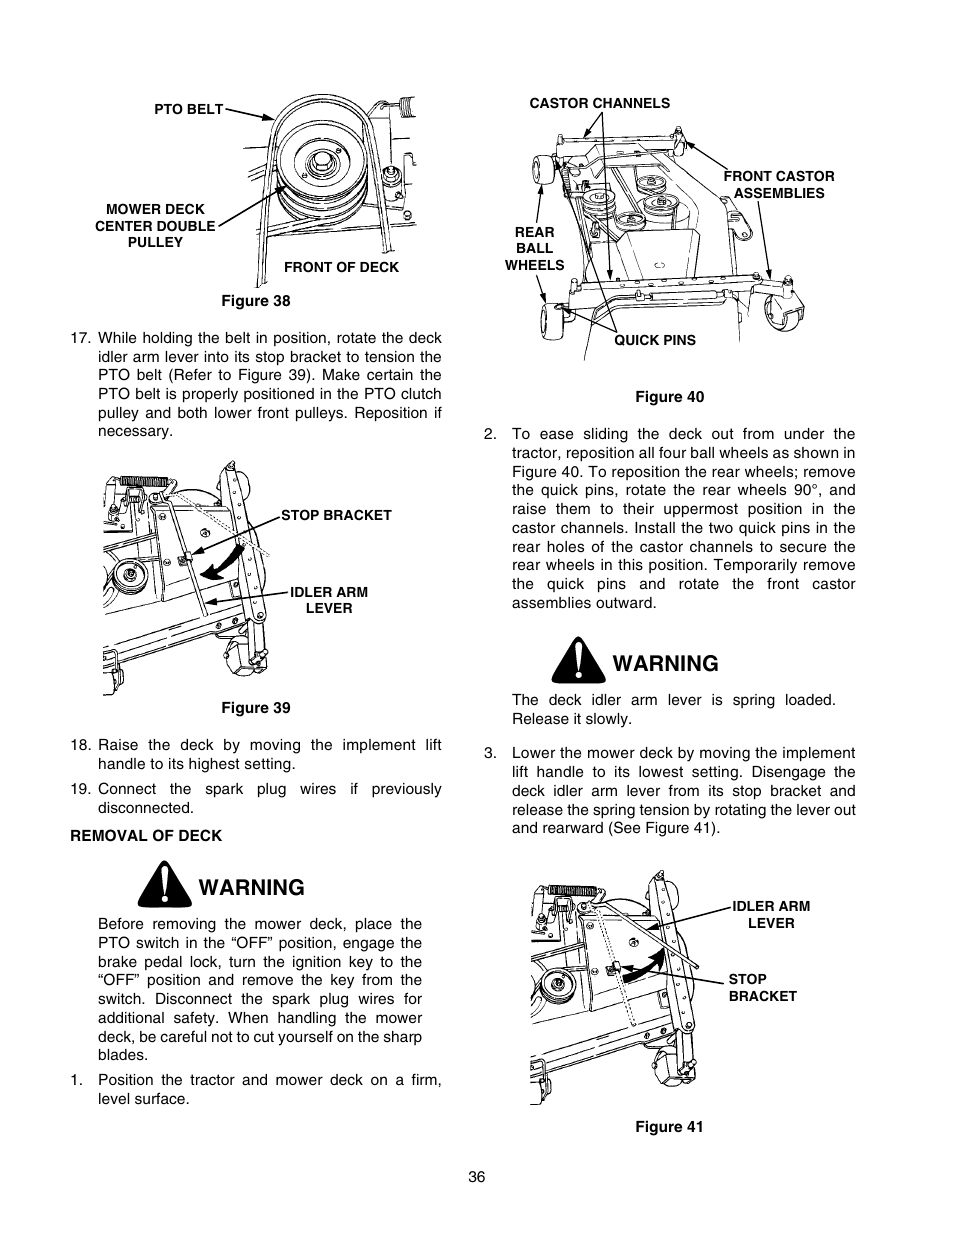 Cub Cadet Gt2554 Schematic Trusted Wiring Diagram Gt2550 Warning Gt 2554 User Manual Page 36 60 Original Mode